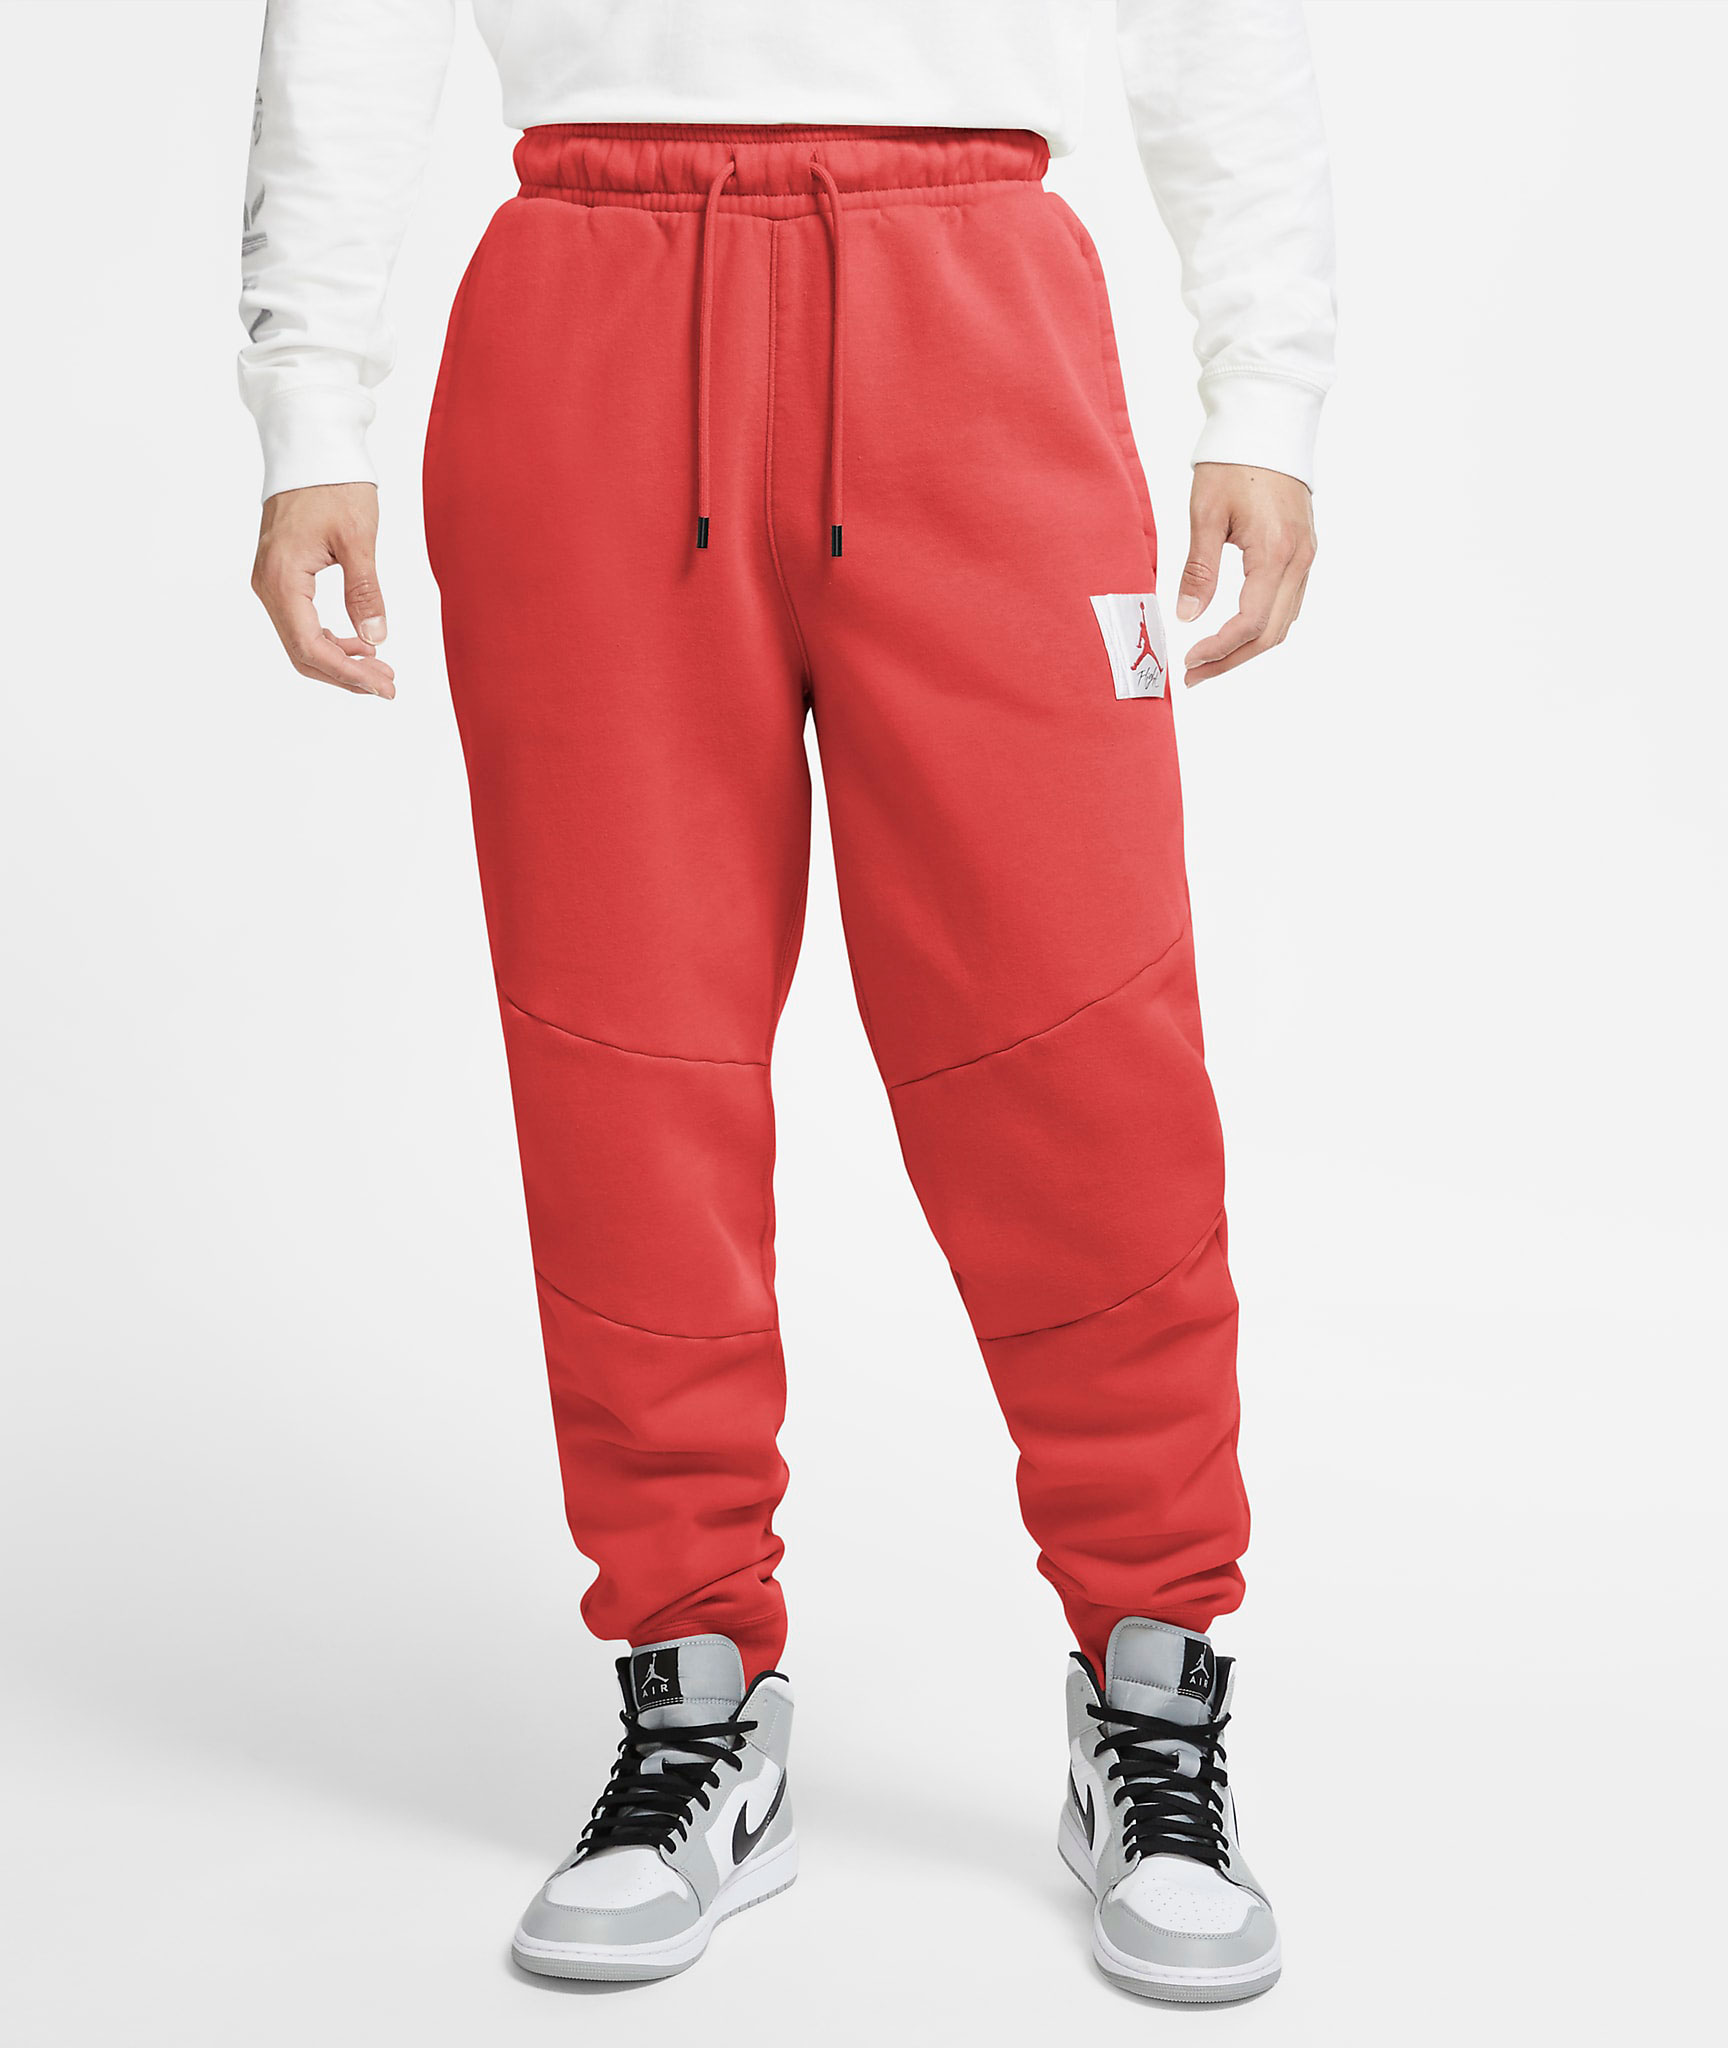 jordan-flight-fleece-pants-red